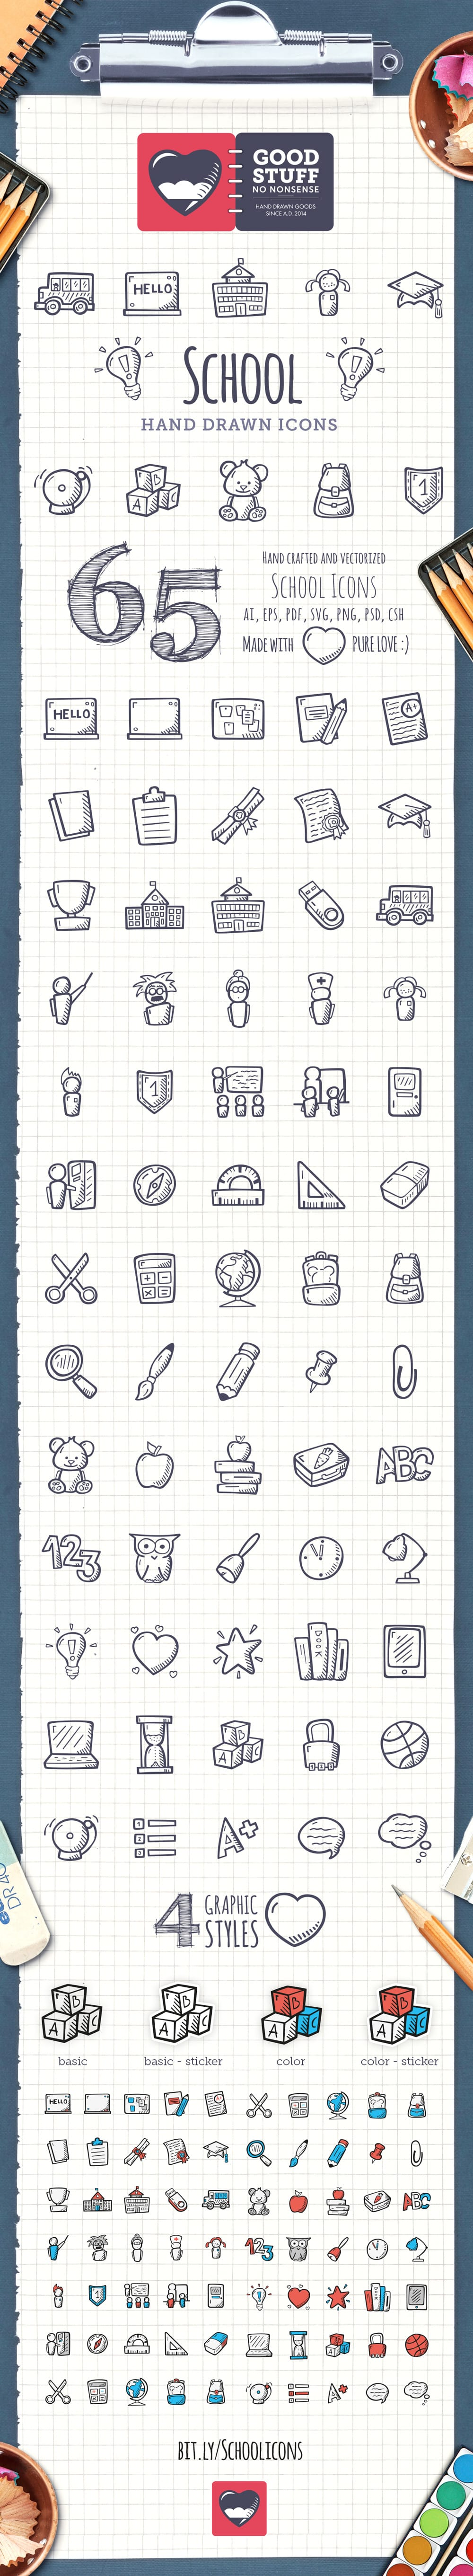 School Icons - Hand Drawn Icons